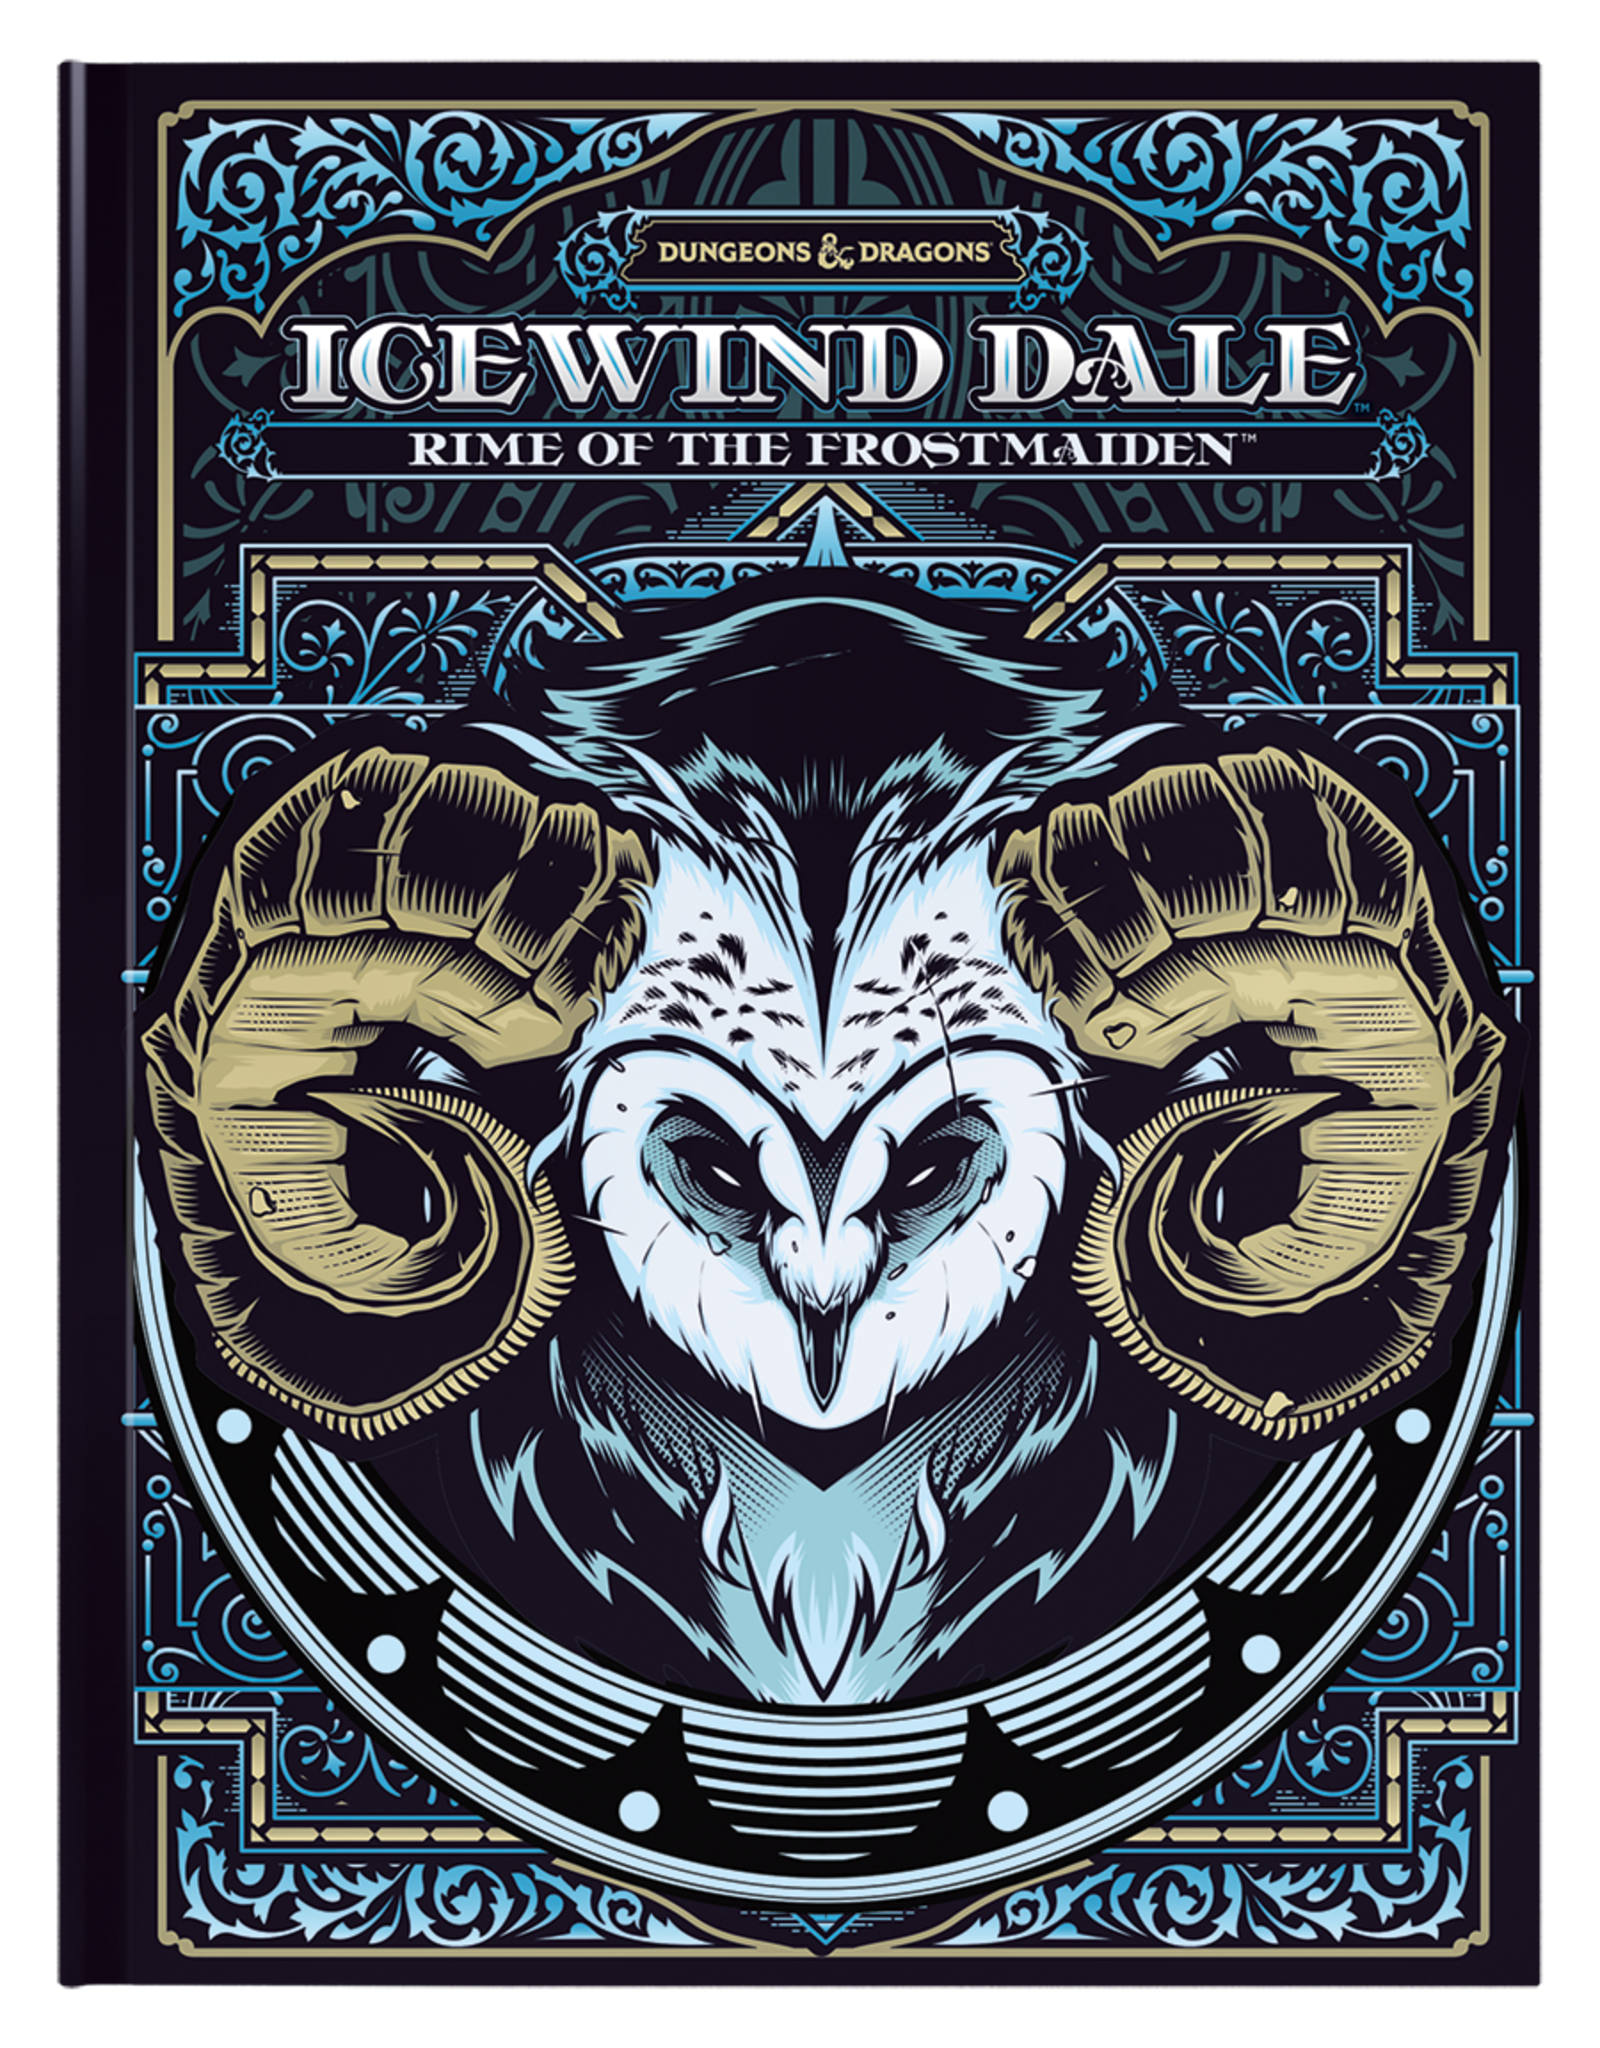 Dungeon & Dragons: Icewind Dale - Rime of the Frostmaiden (Brick & Mortar Cover)